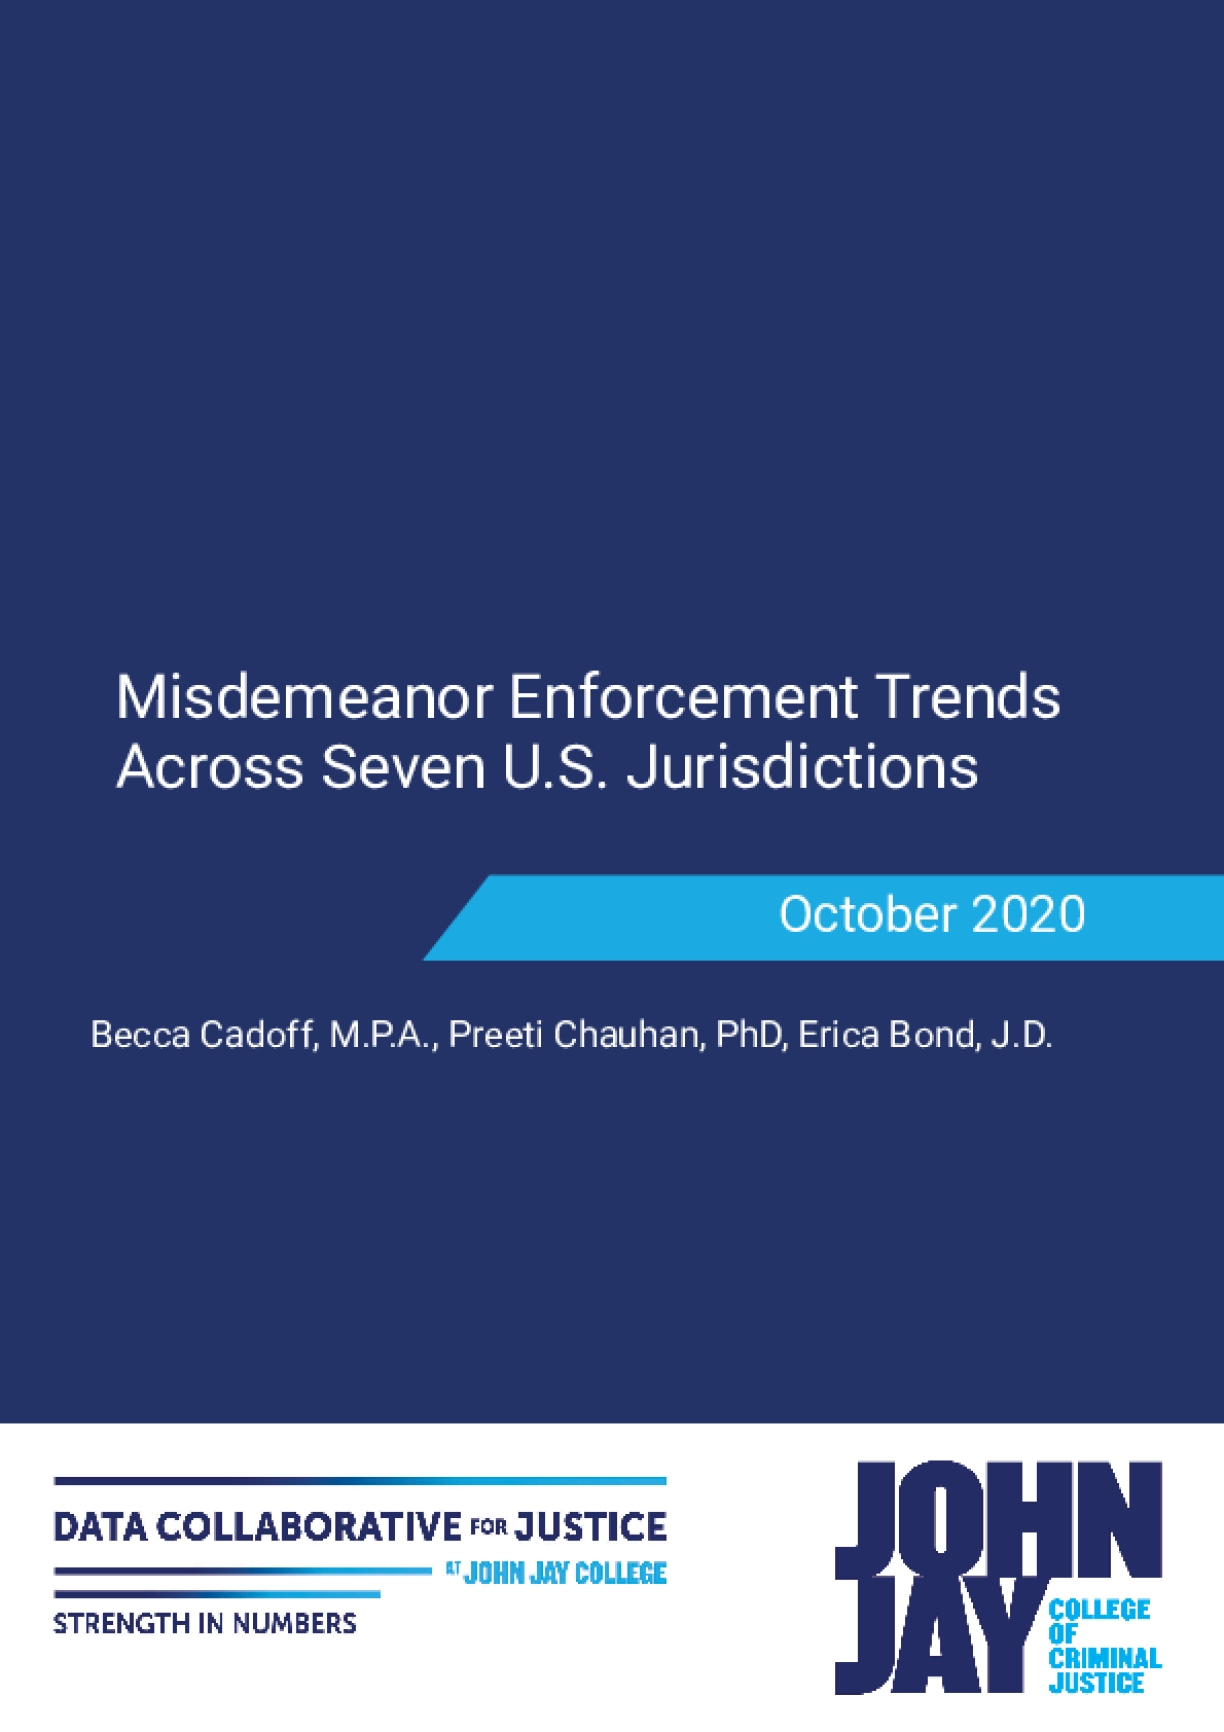 Misdemeanor Enforcement Trends Across Seven U.S. Jurisdictions